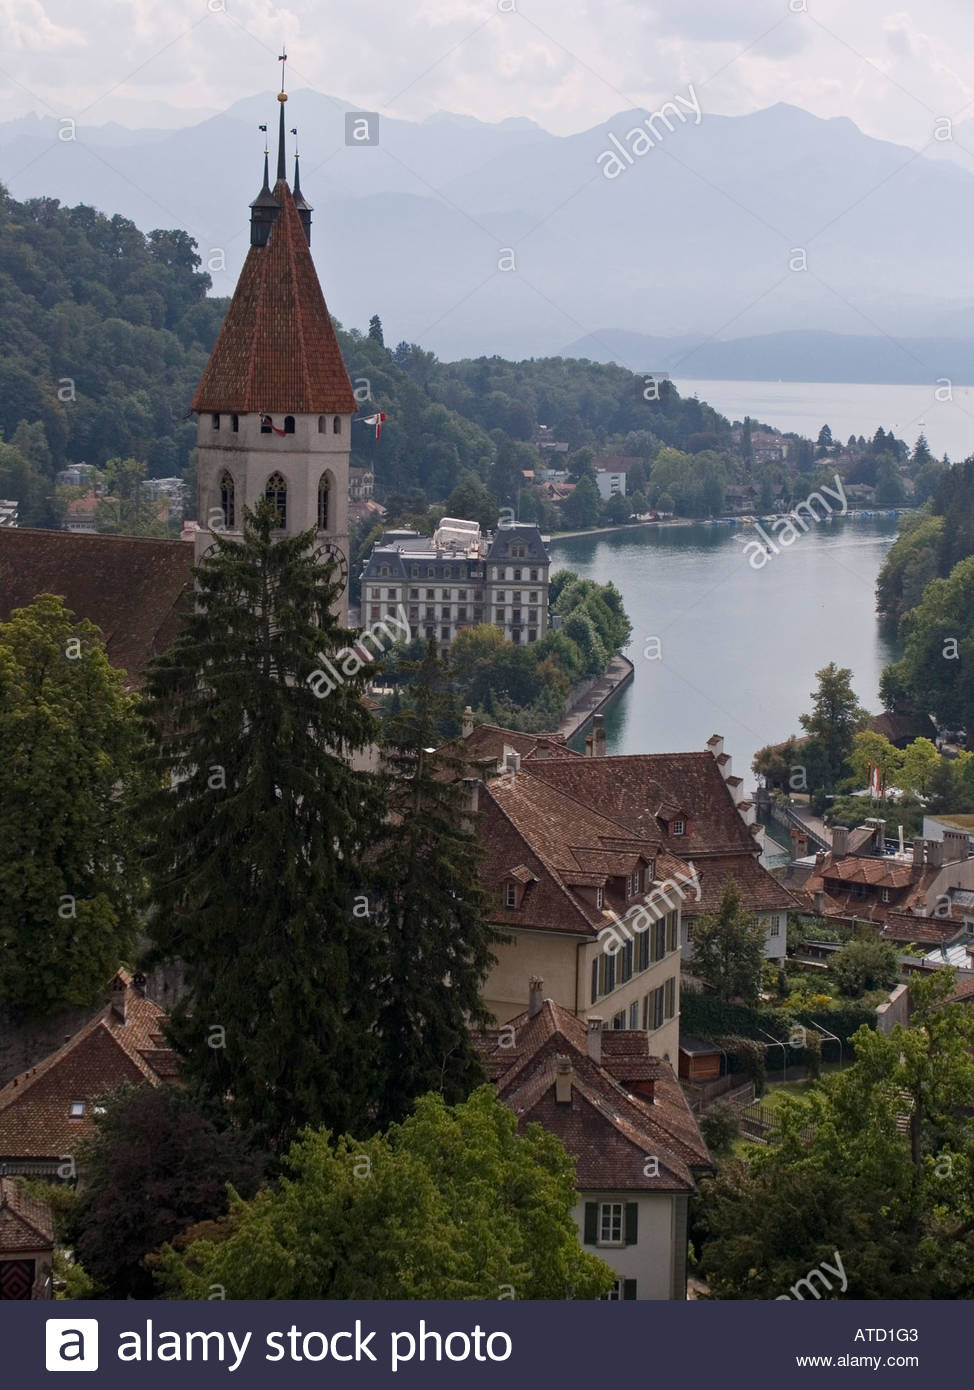 Schloss Thun Thun, Stadtkirche and view of Alps in distance from Schloss Thun Thun ...